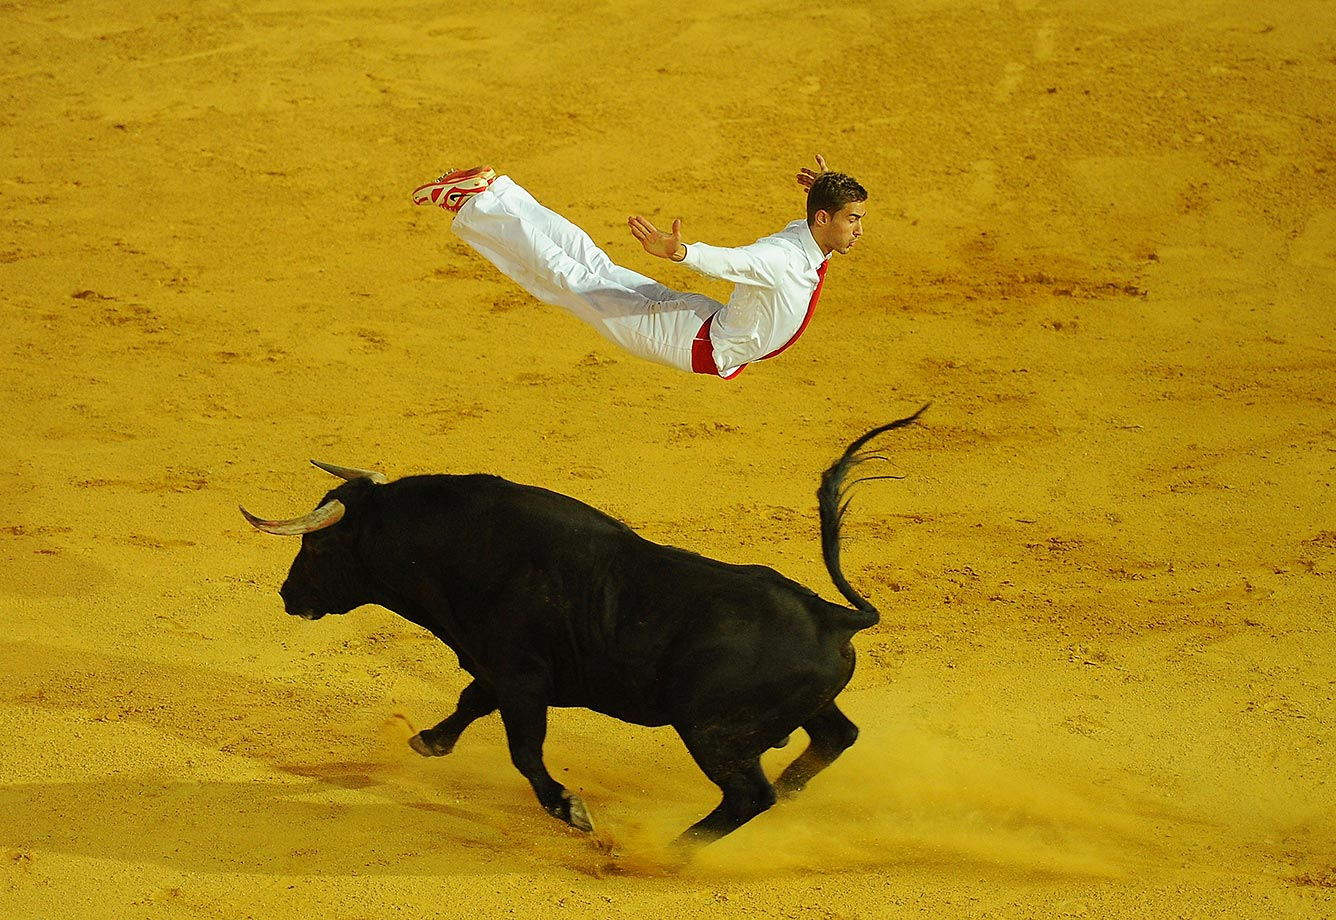 Fabien Napias of the French Recortadores company Passion Saltador leaps over a charging bull at the end of the Liga de Corte Puro finals.  The art consists of leaping, diving and somersaulting over charging bulls.